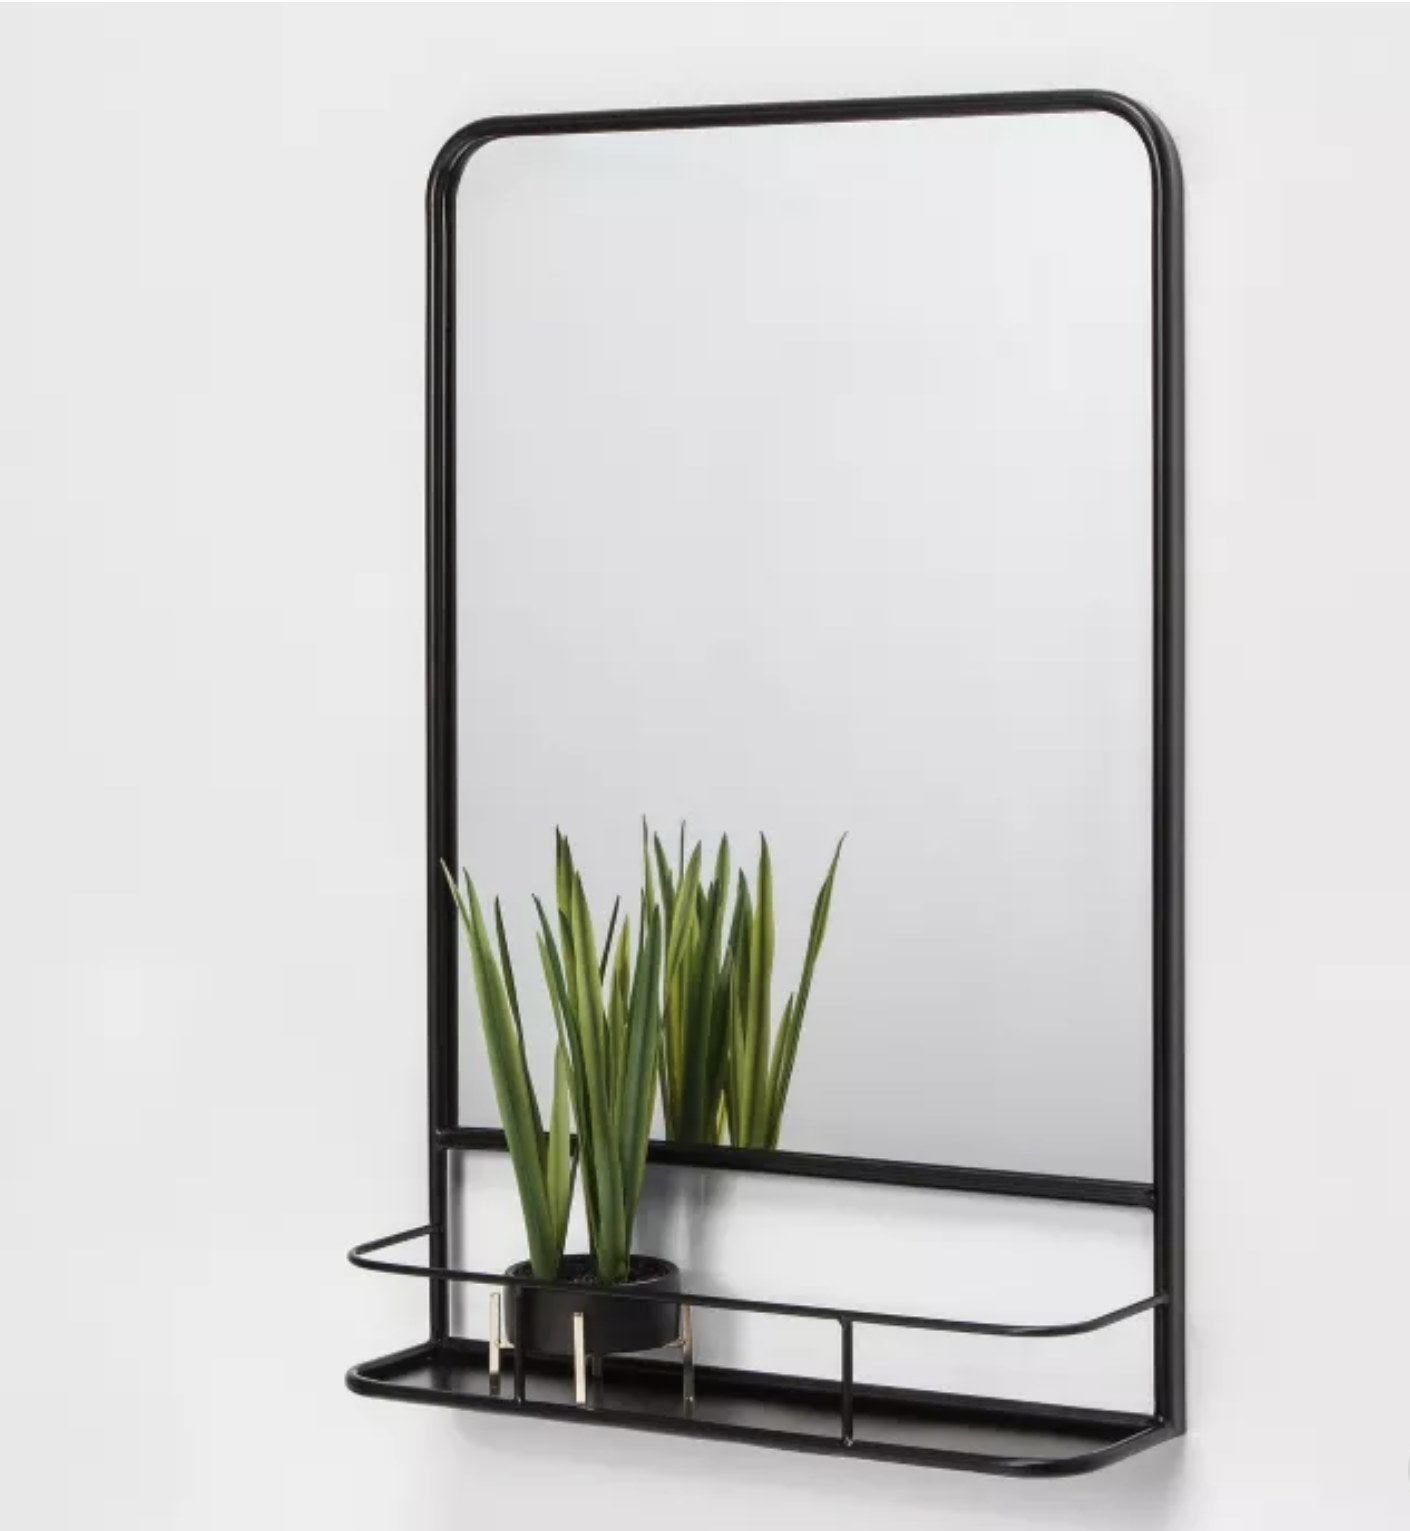 The mirror displaying a small plant on its shelf